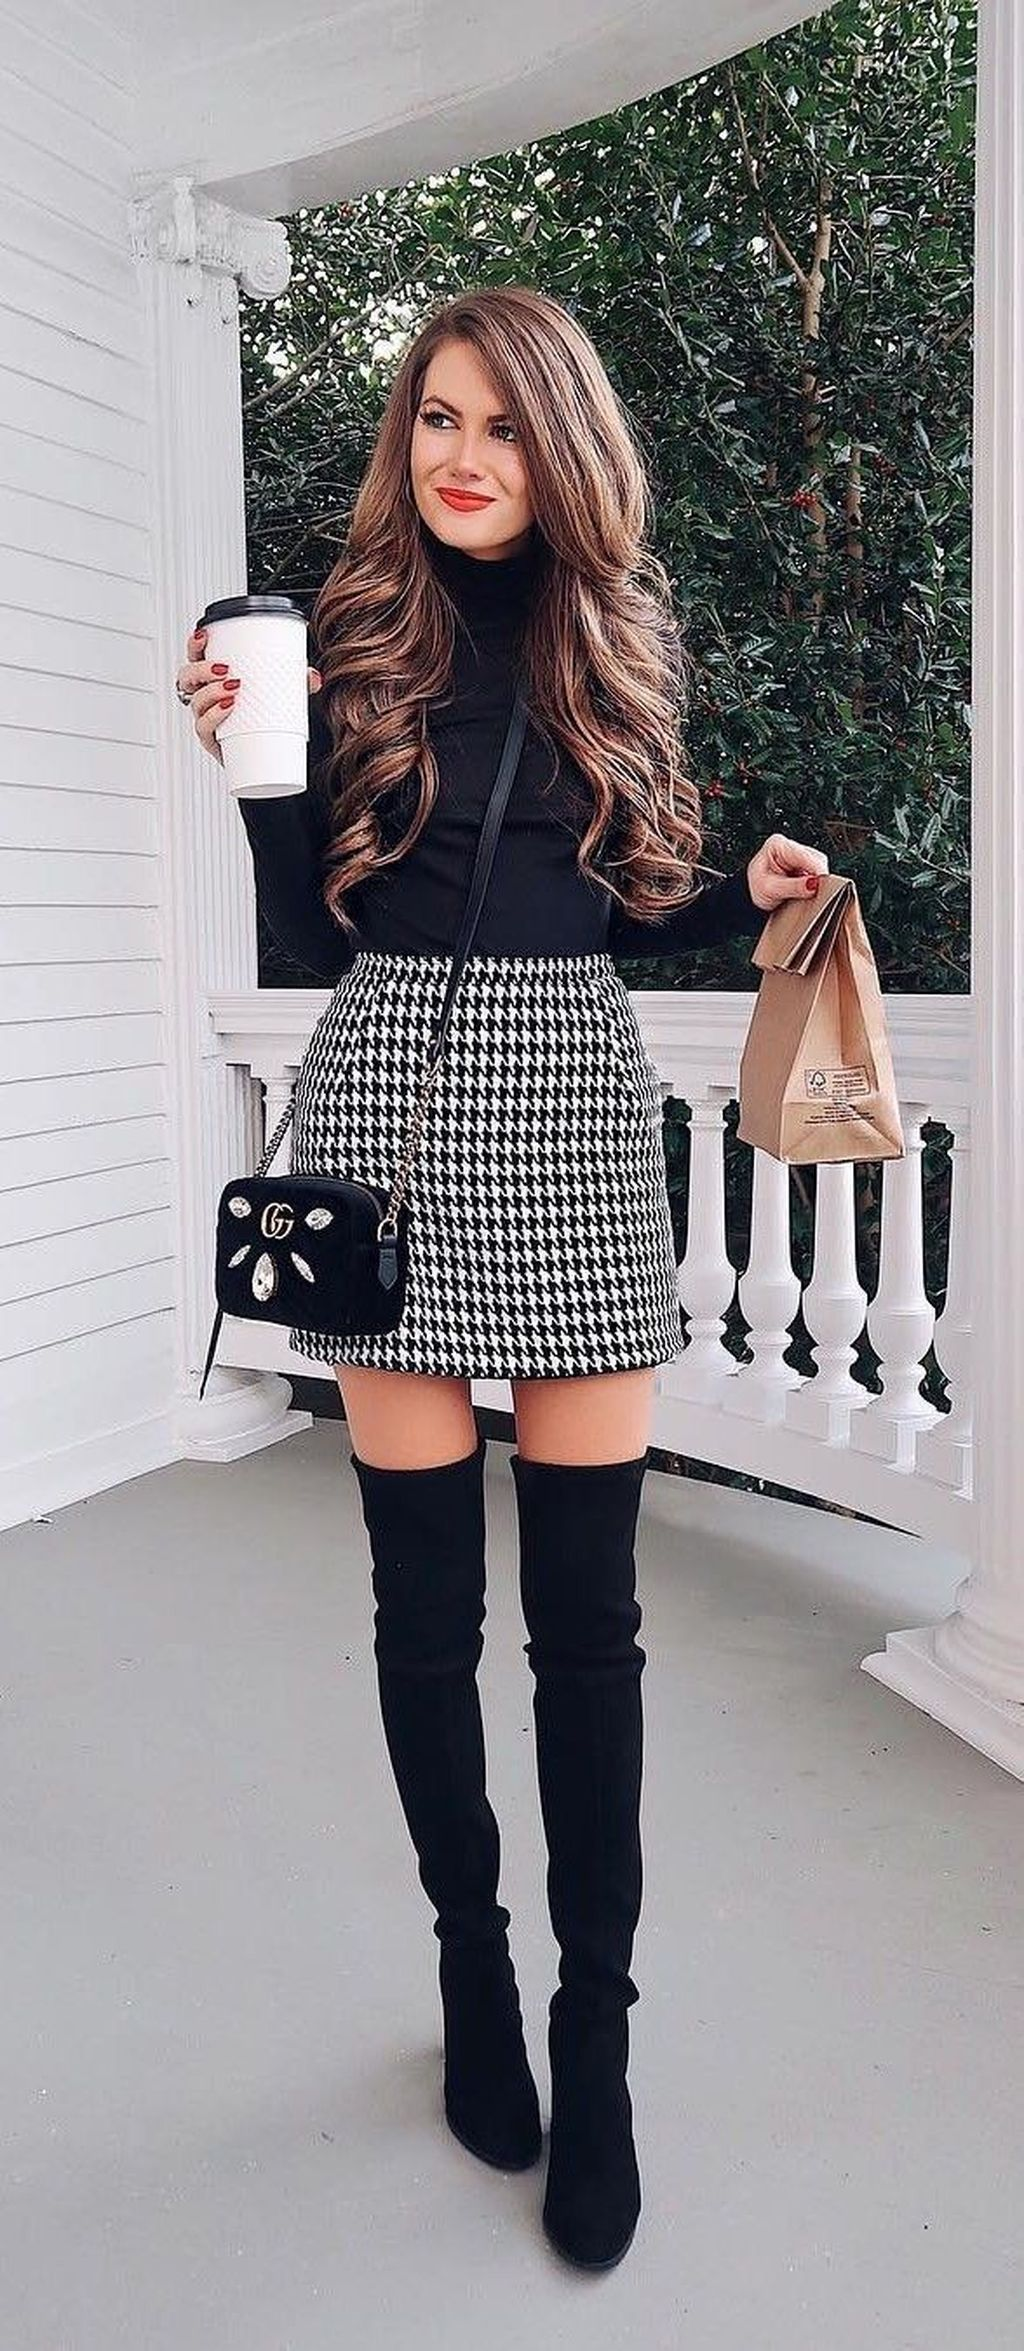 34 Perfect Winter Boots Outfits Ideas For Women #casualchristmasoutfitsforwomen